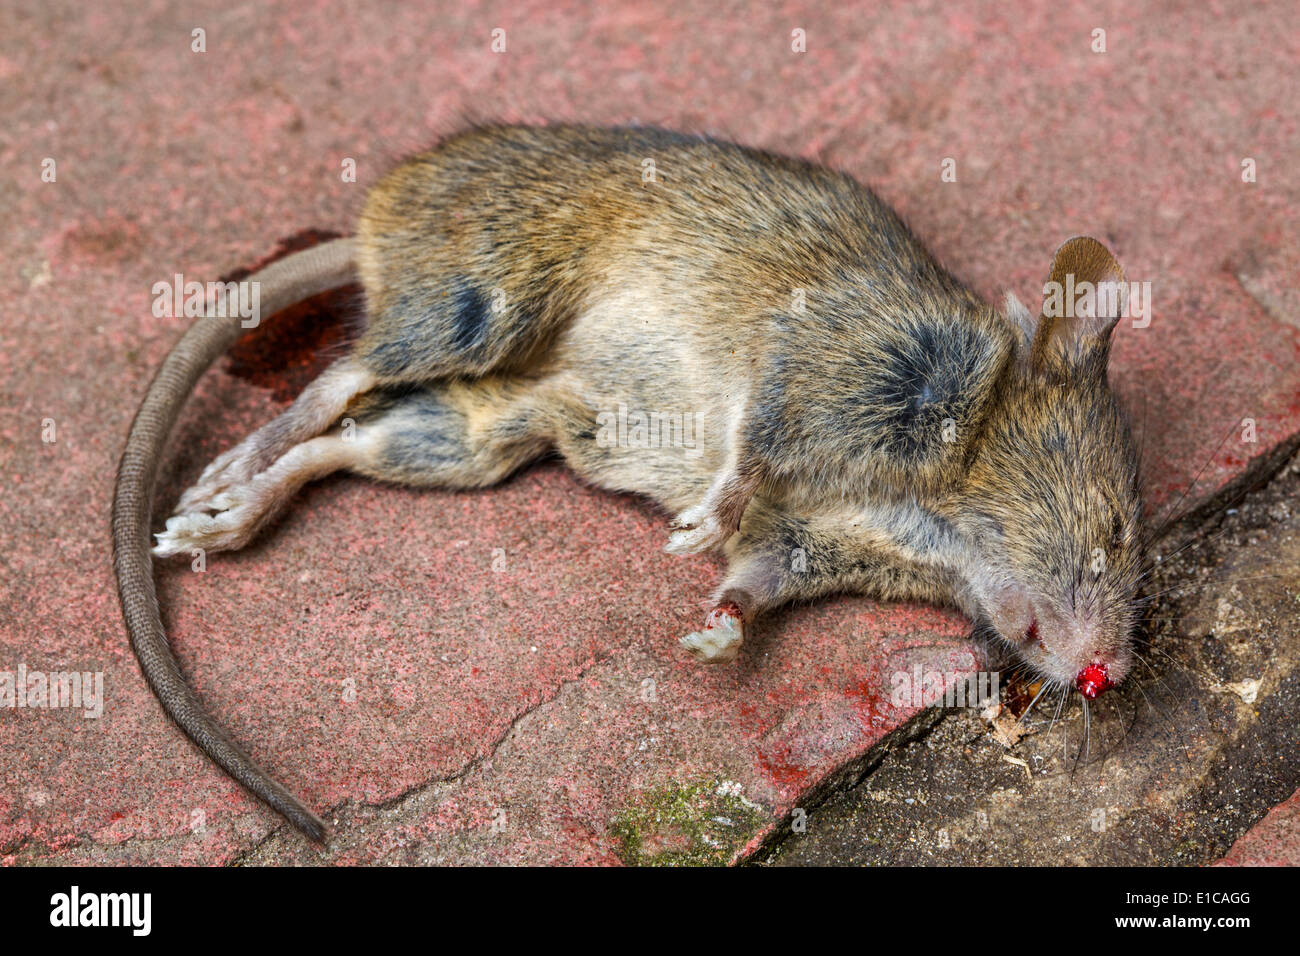 Close up of dead juvenile brown rat (Rattus norvegicus) - Stock Image